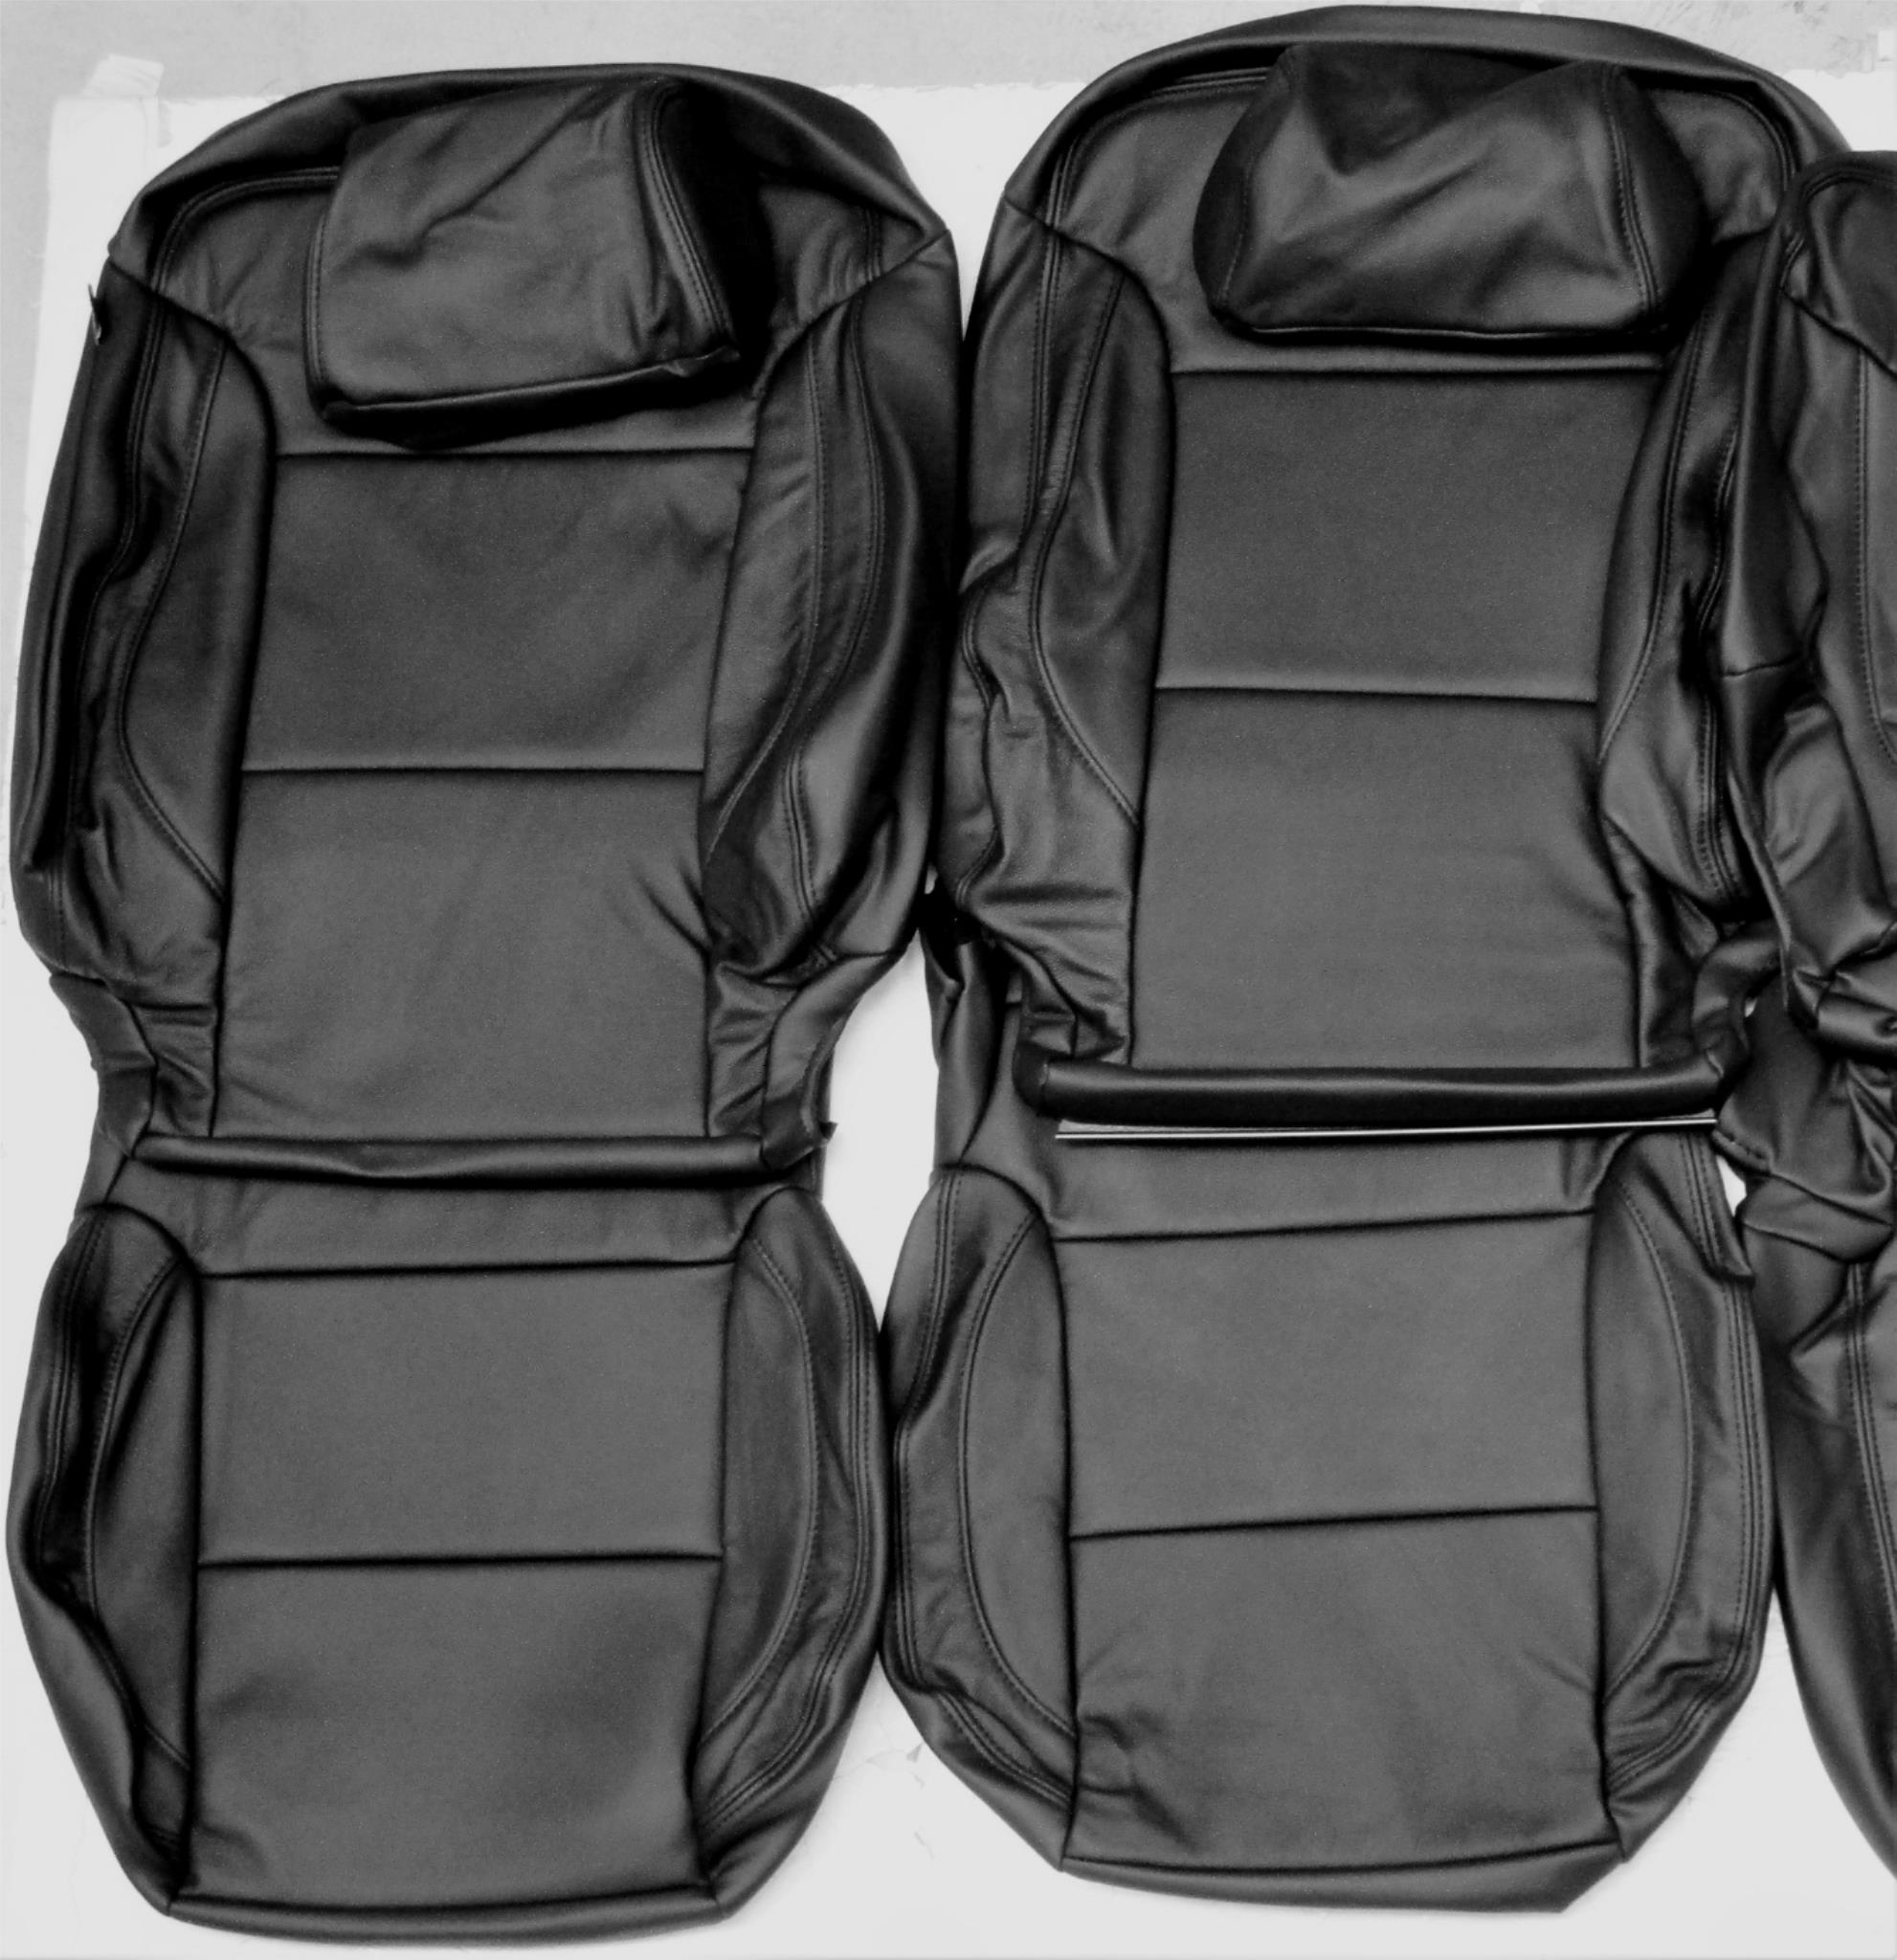 Fits 2015-2016 Chevrolet Silverado 2500 HD Seat Cover Front Covercraft 24755ZX